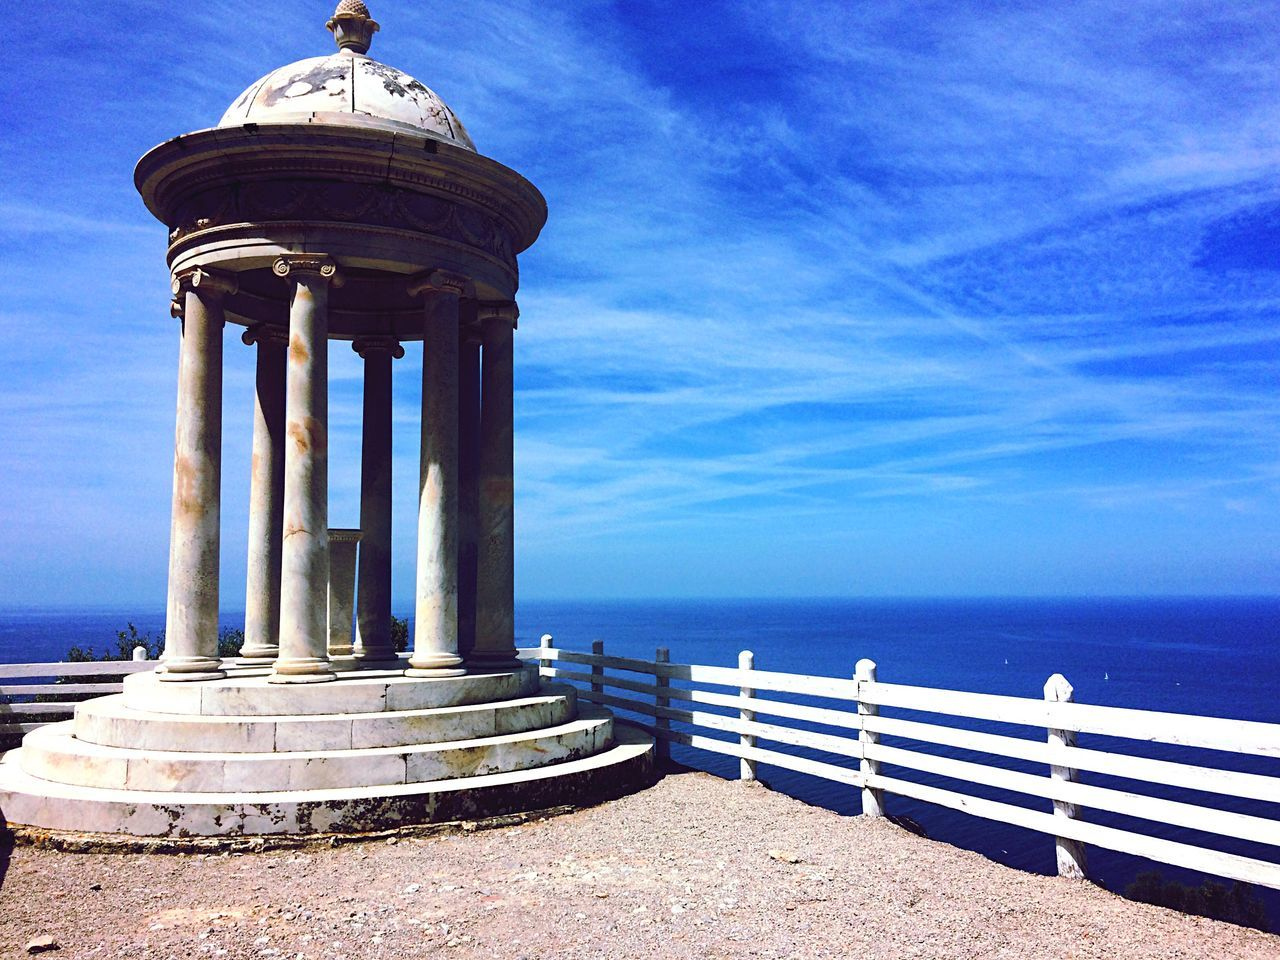 sea, horizon over water, sky, water, blue, architectural column, architecture, built structure, outdoors, day, no people, nature, beauty in nature